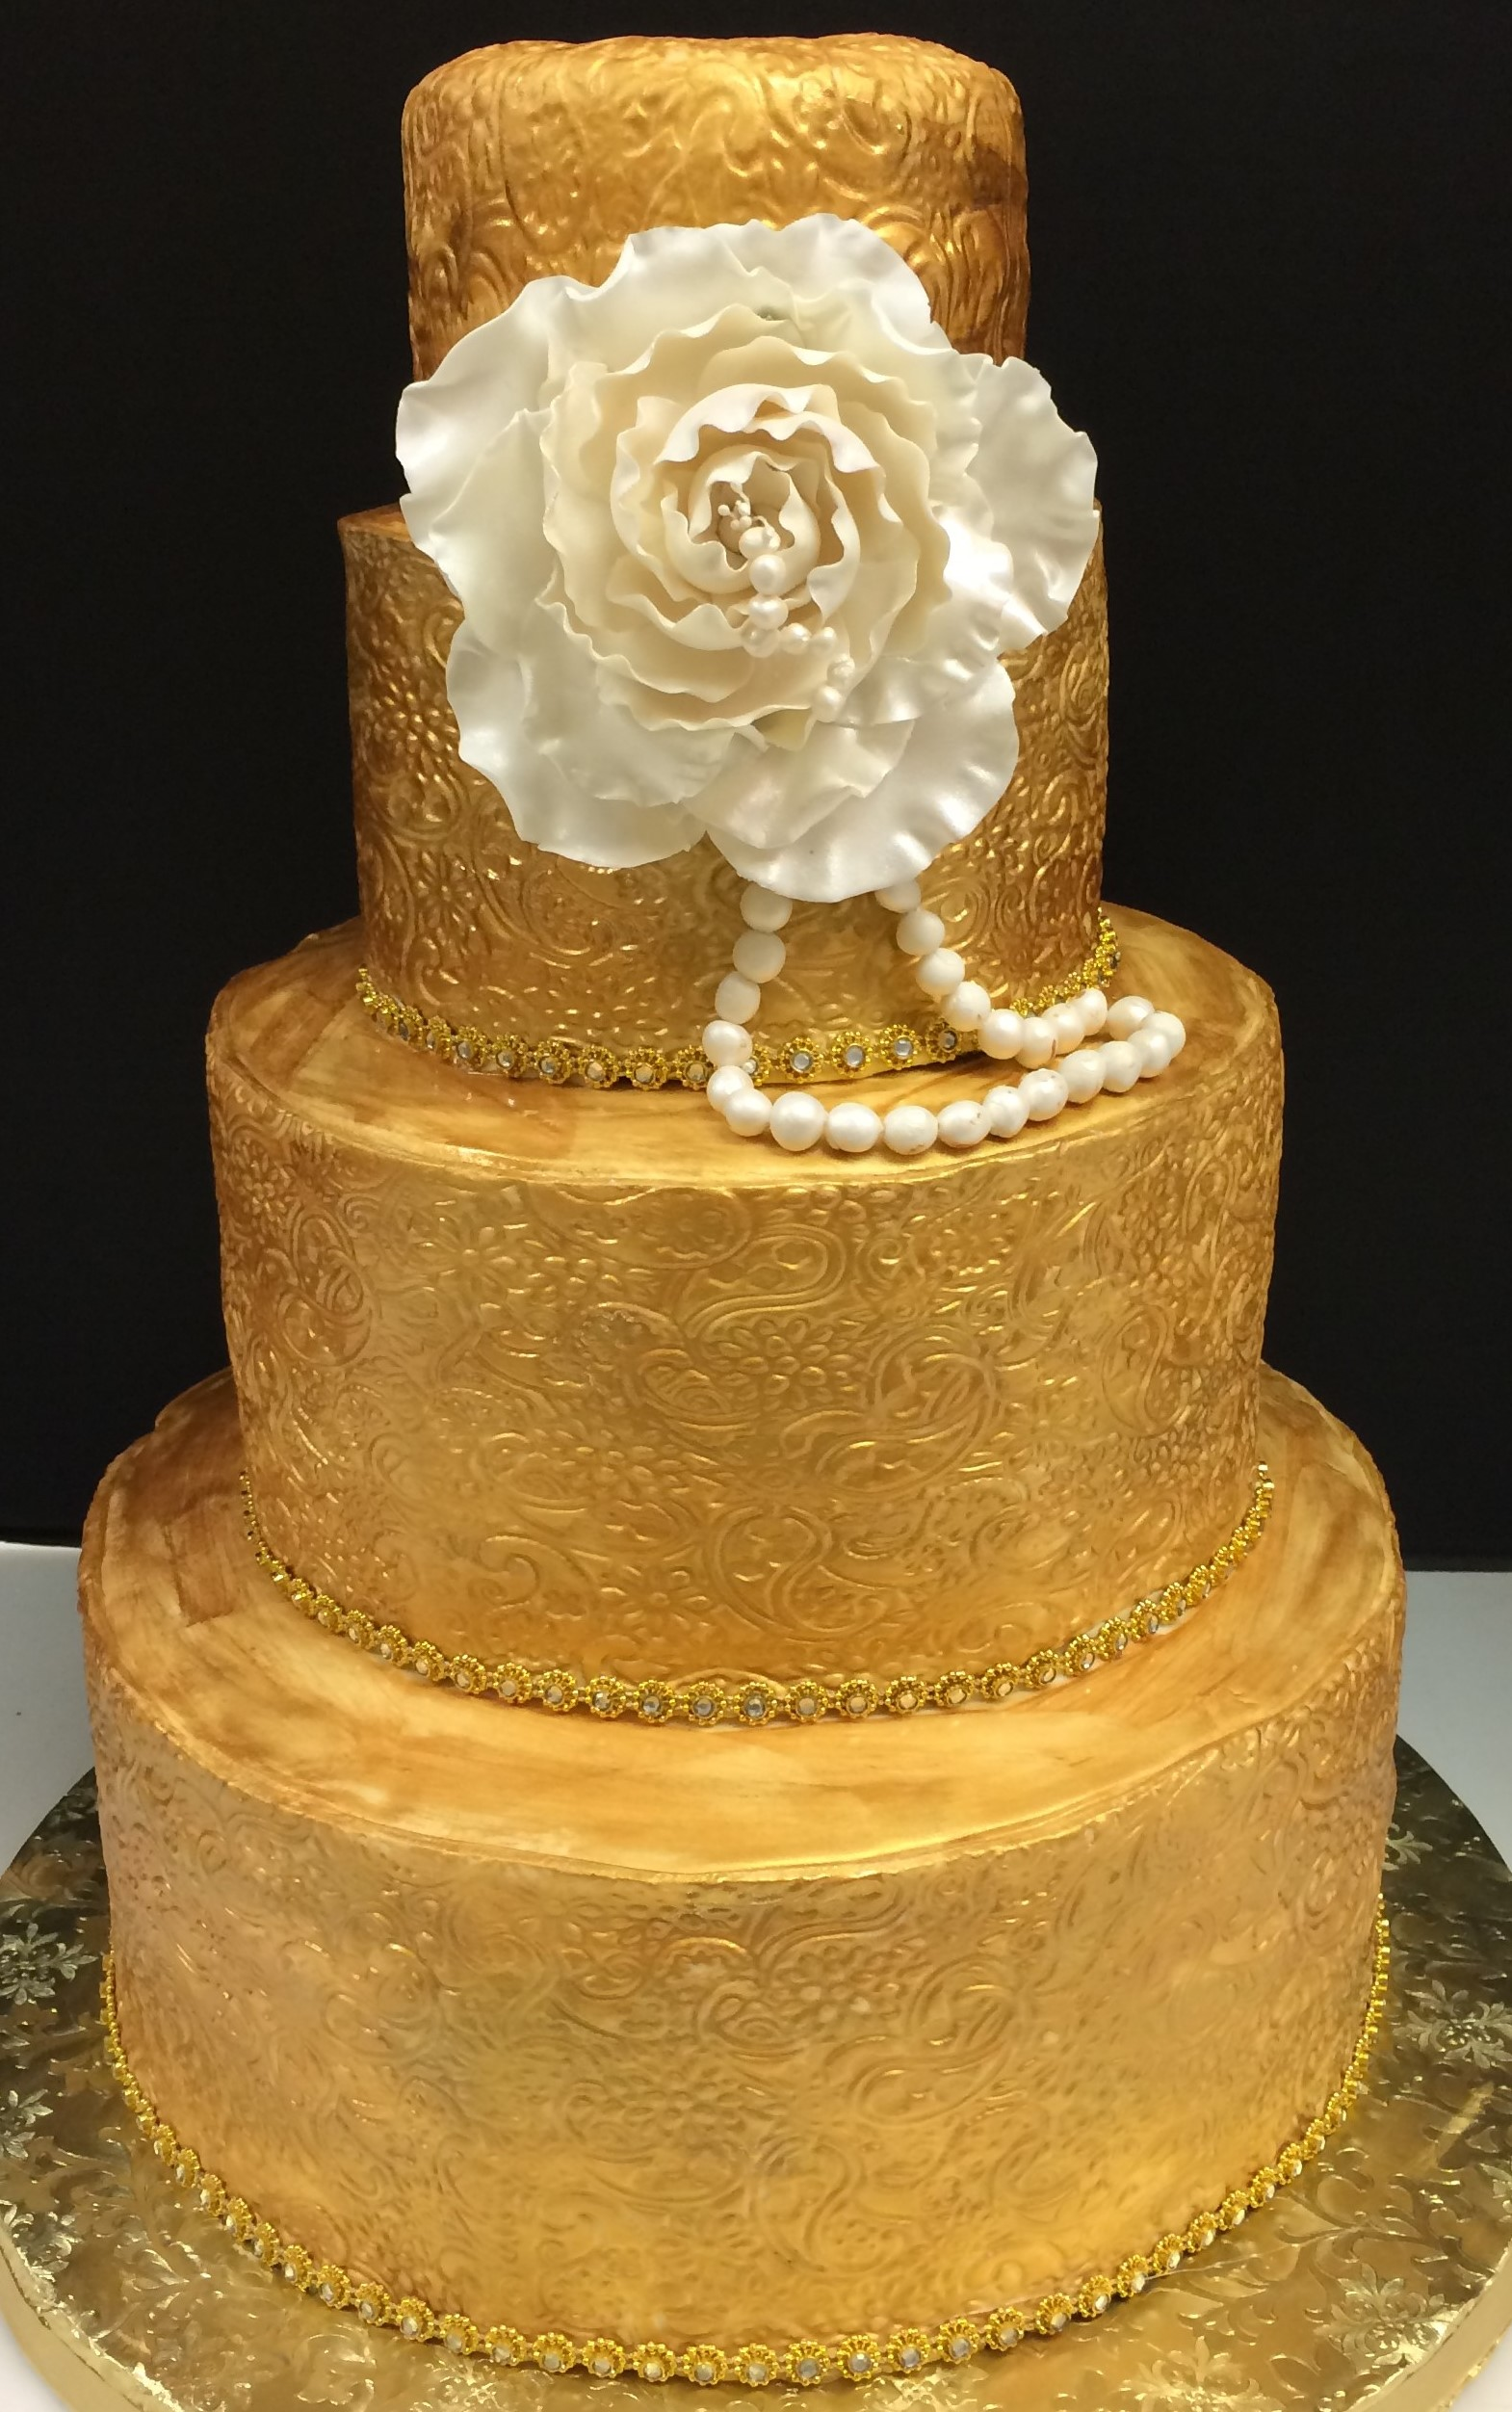 Cakes by Lara | We are a unique bakery specializing in all types of ...